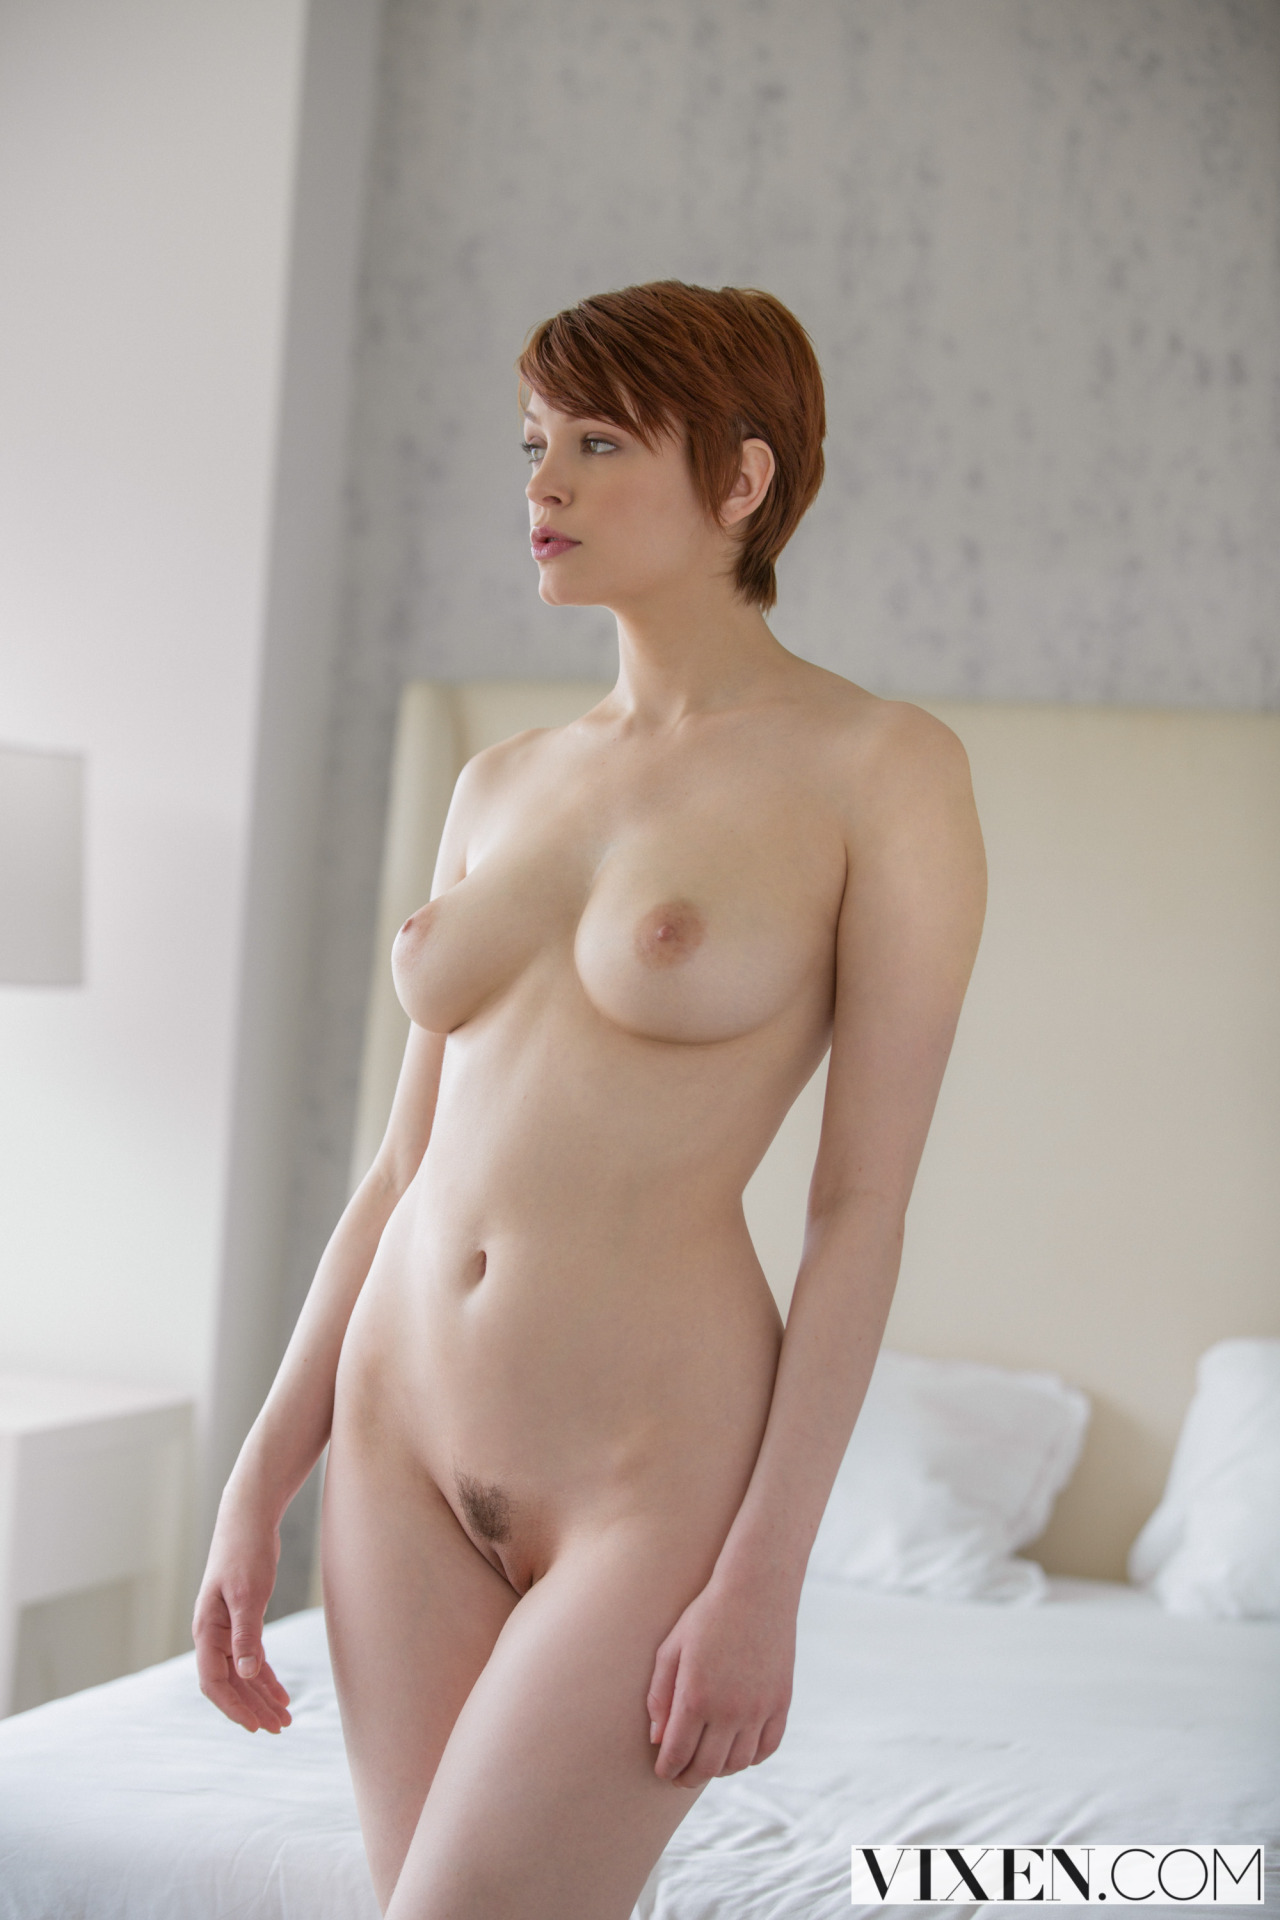 best abi images on pinterest boobs curves and beautiful women